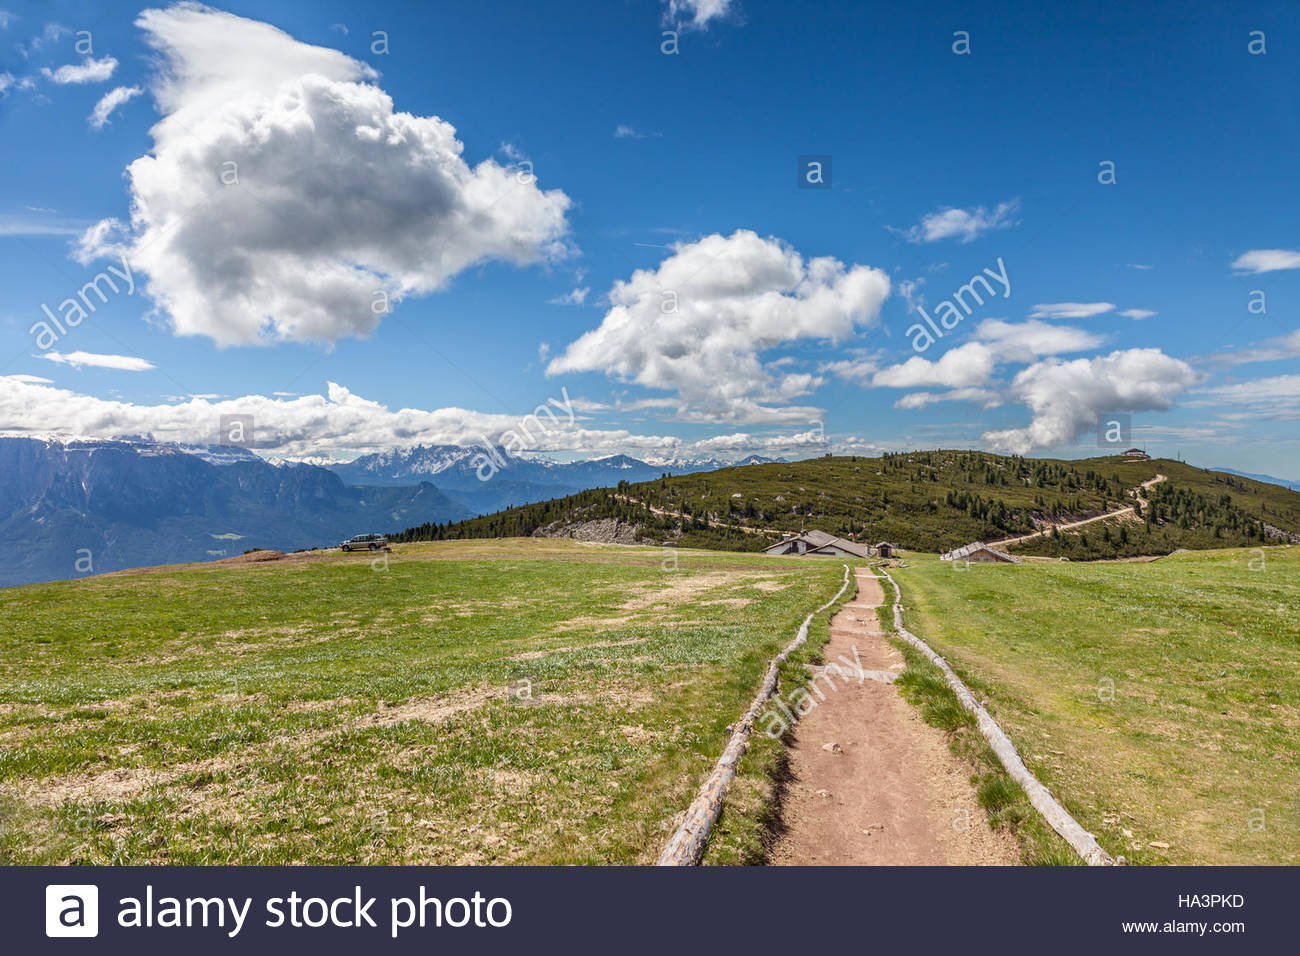 Ascent from the Schwarzseespitze to the Rittnerhorn (2260 m), Ritten, South Tyrol, Italy - Stock Image